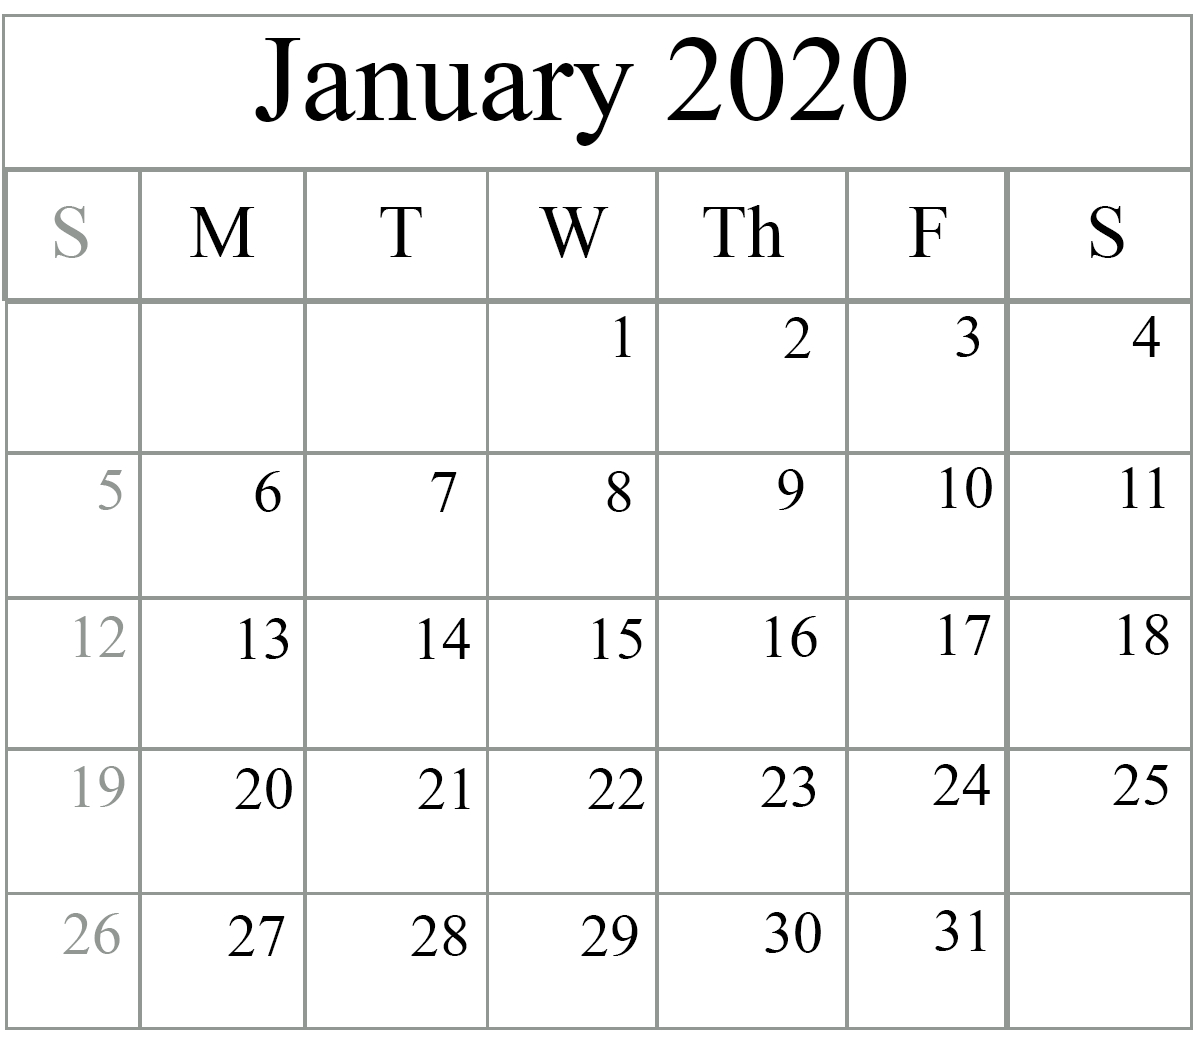 January 2020 Calendar Excel – Free Monthly Calendar regarding 2020 Monthly Fill In Calendars